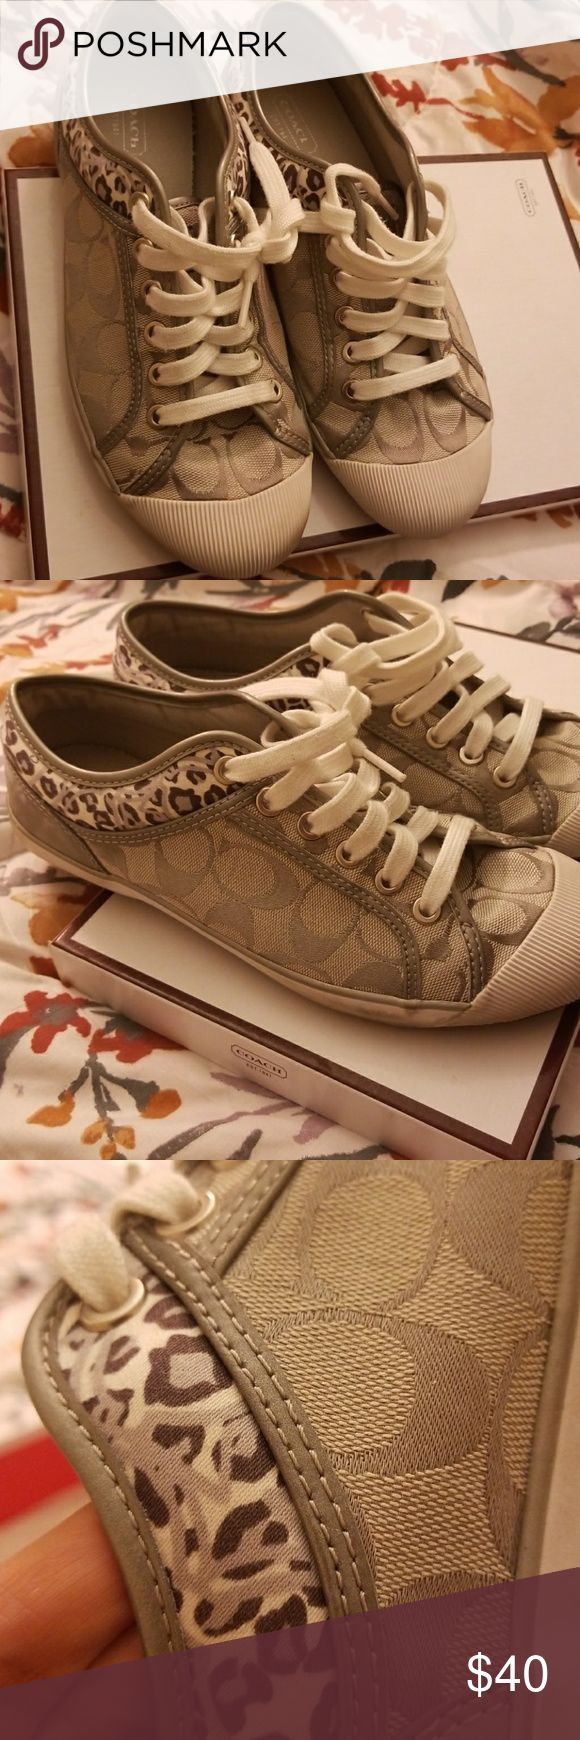 Silver and white comfy Coach sneakers Be casual, fashionable and fun with these minimally used Coach sneakers Coach Shoes Sneakers